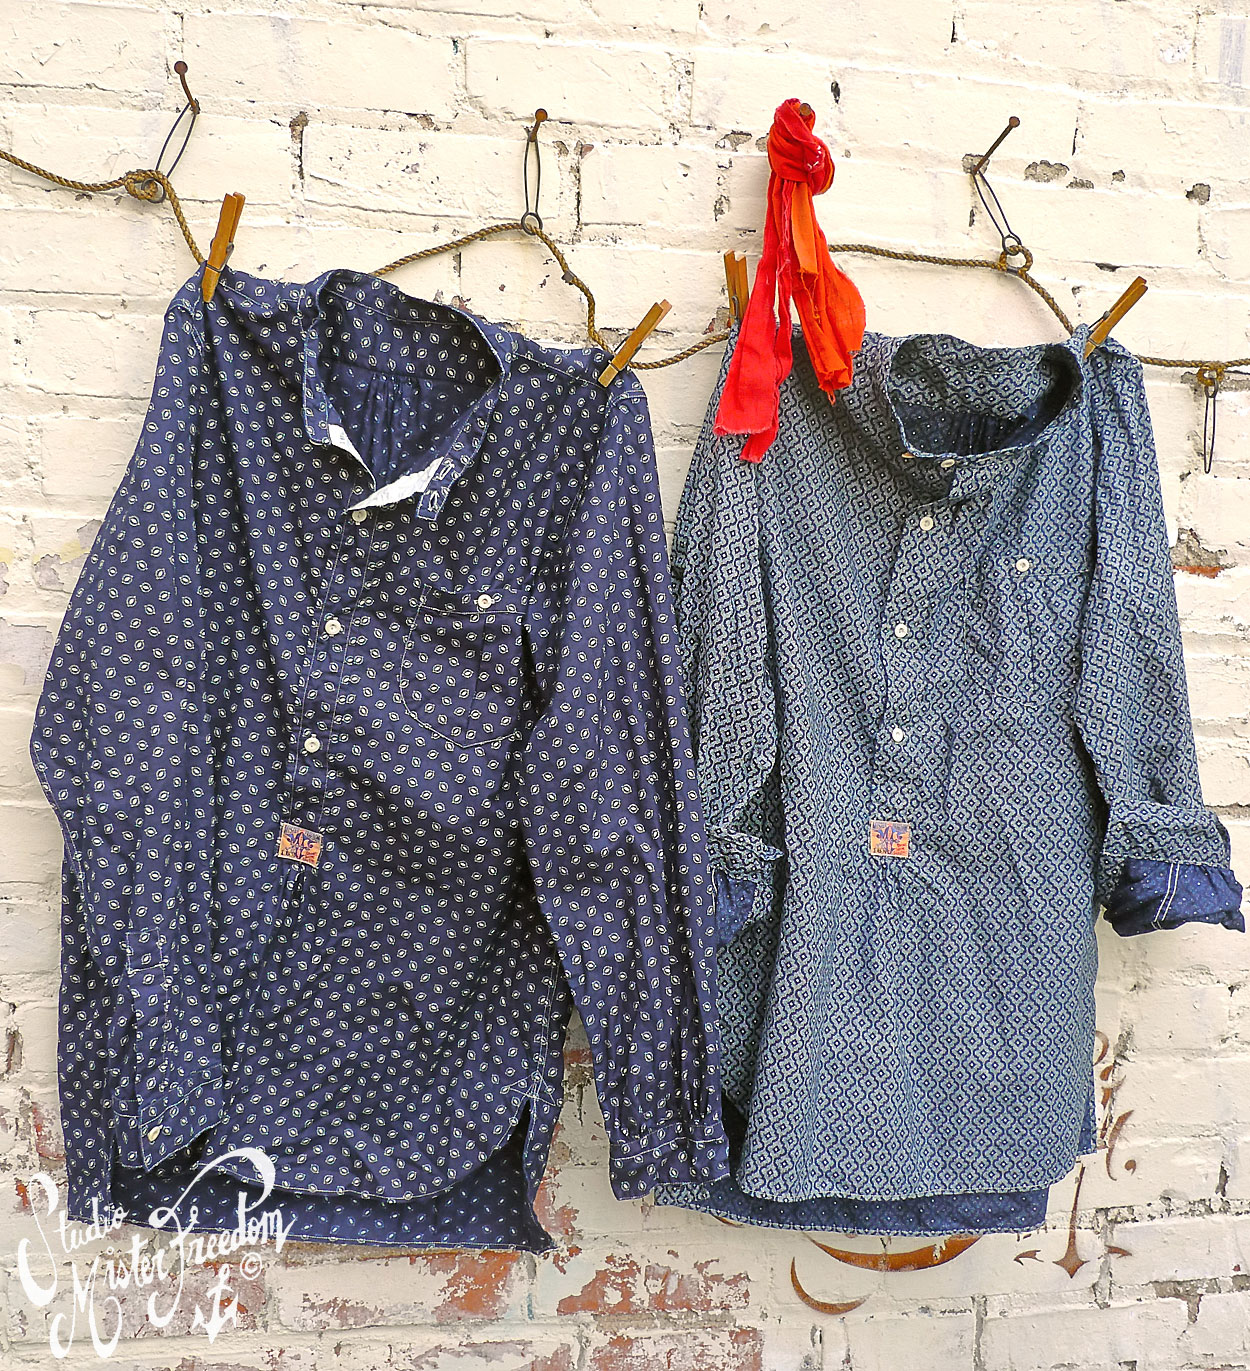 MFSC Calico Trade Shirts wall